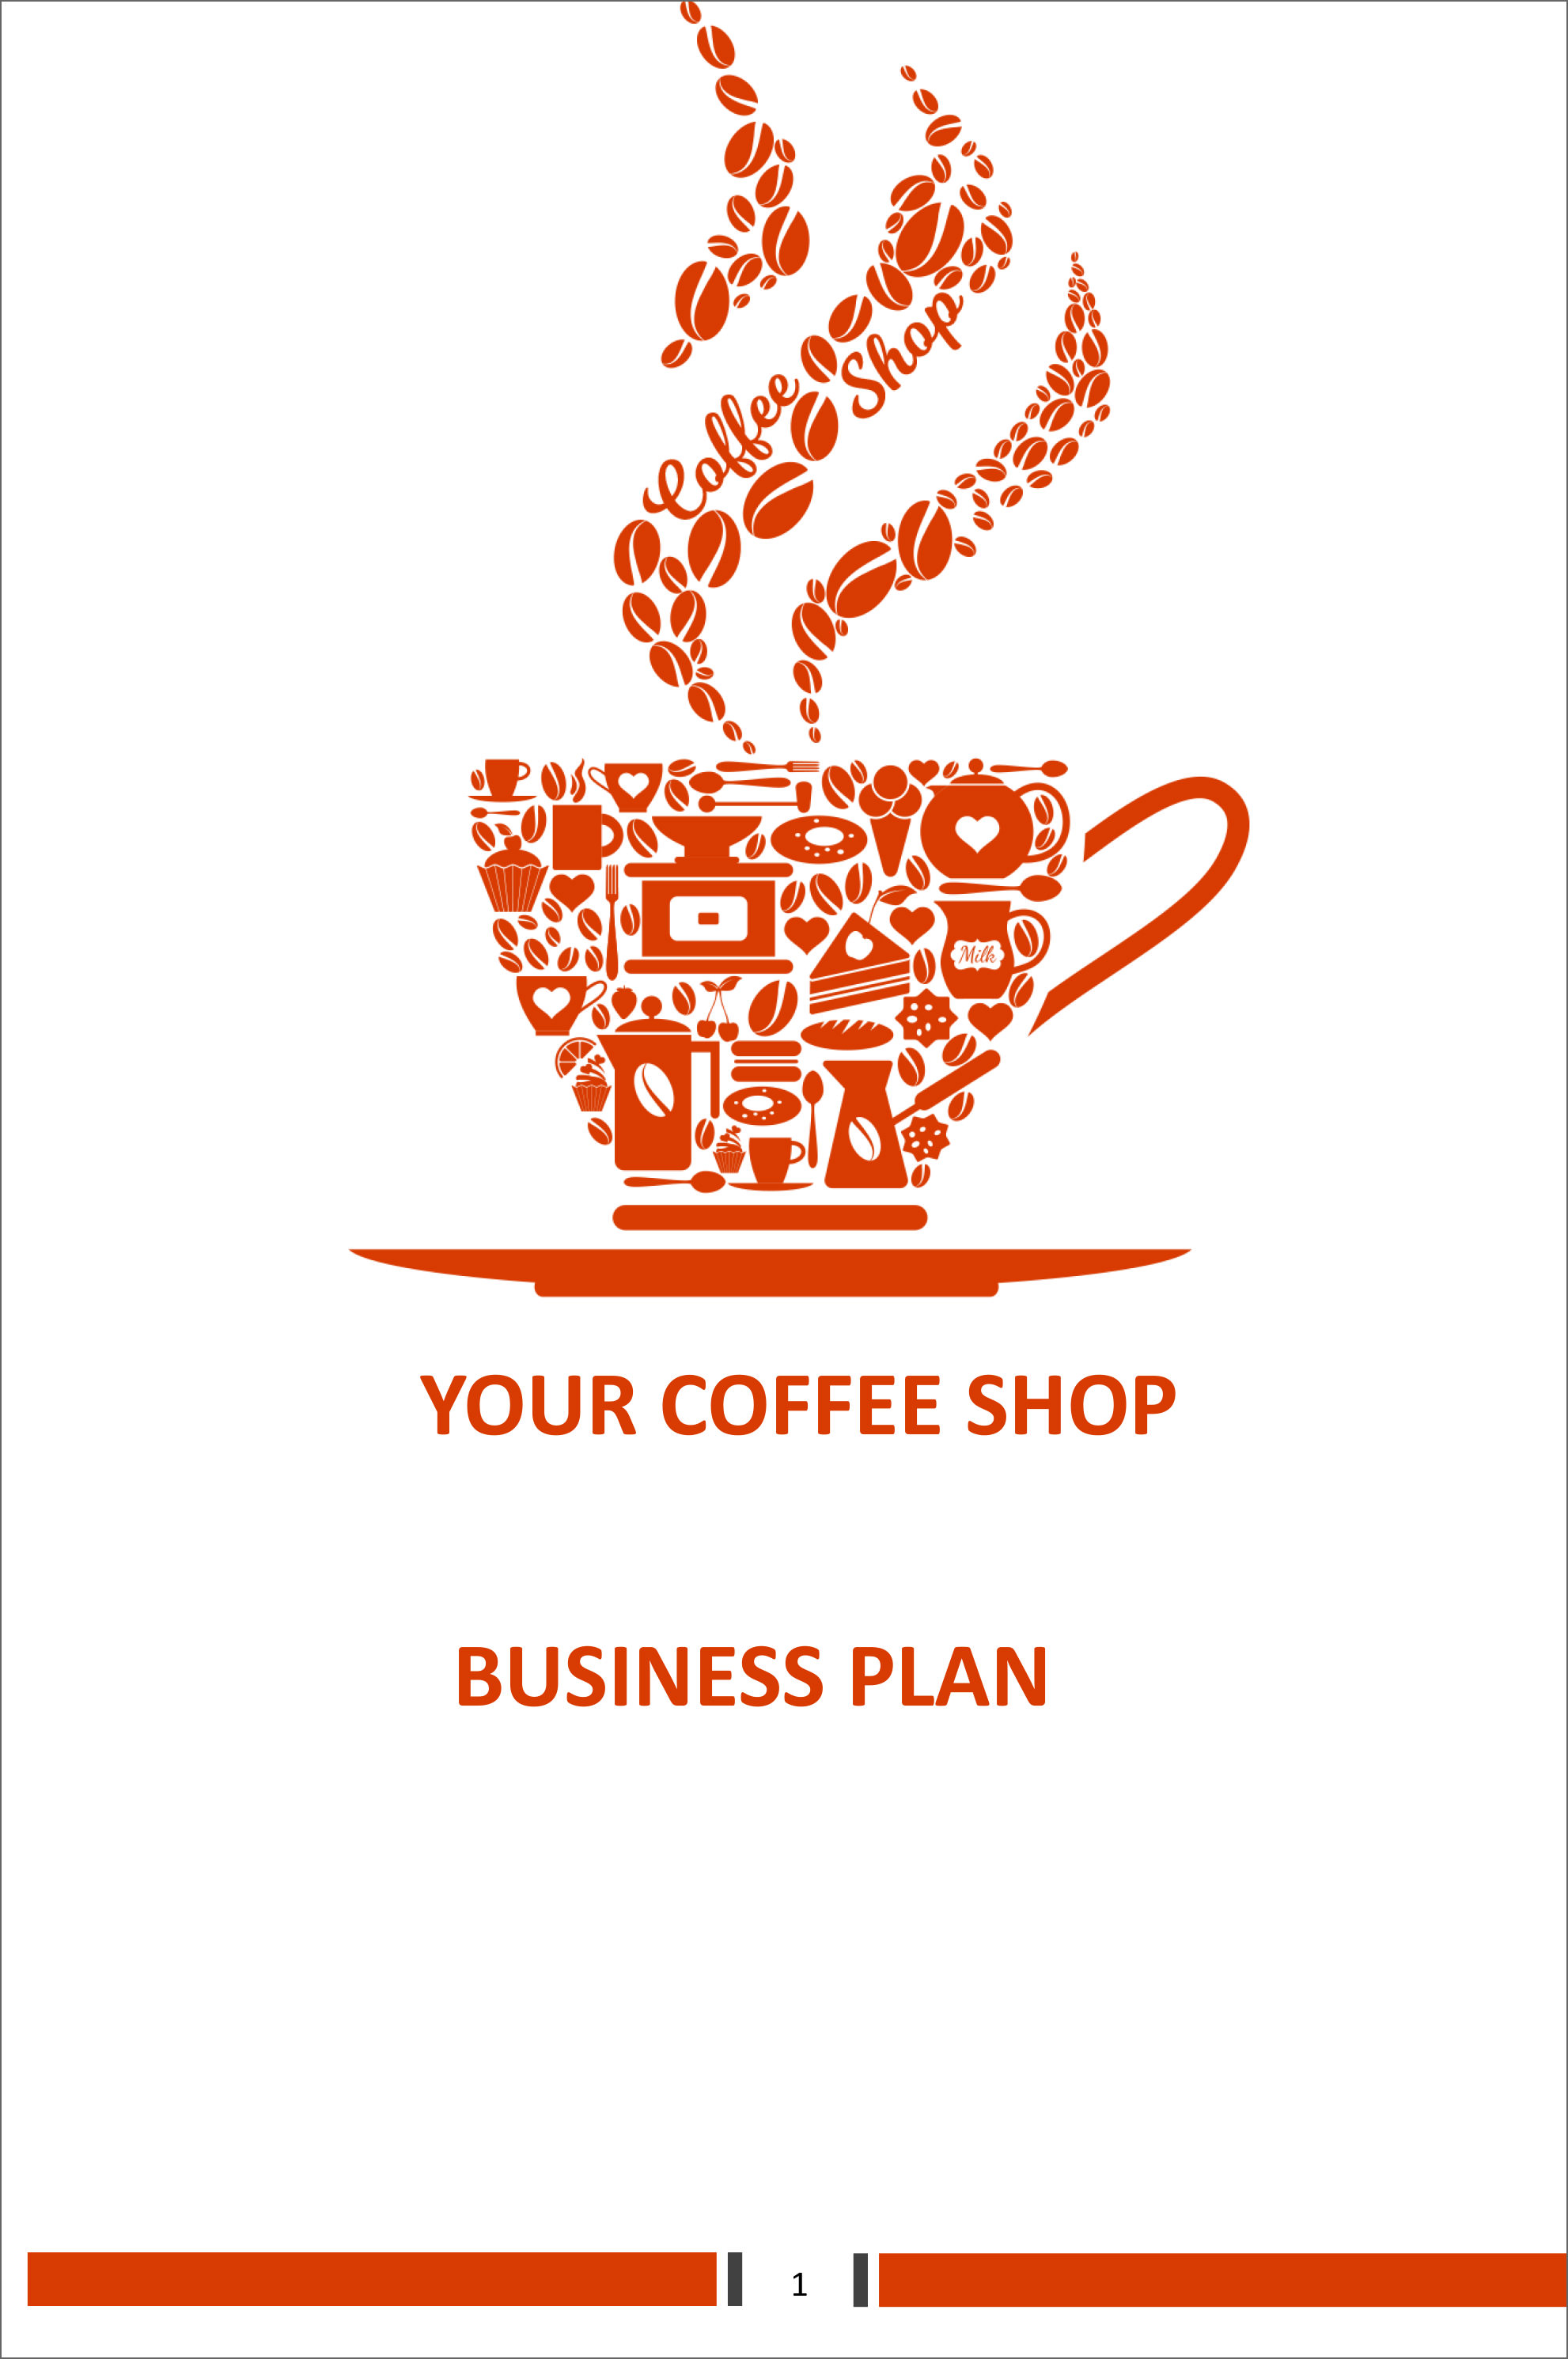 Basic Business Plan Template Word from www.geckoandfly.com